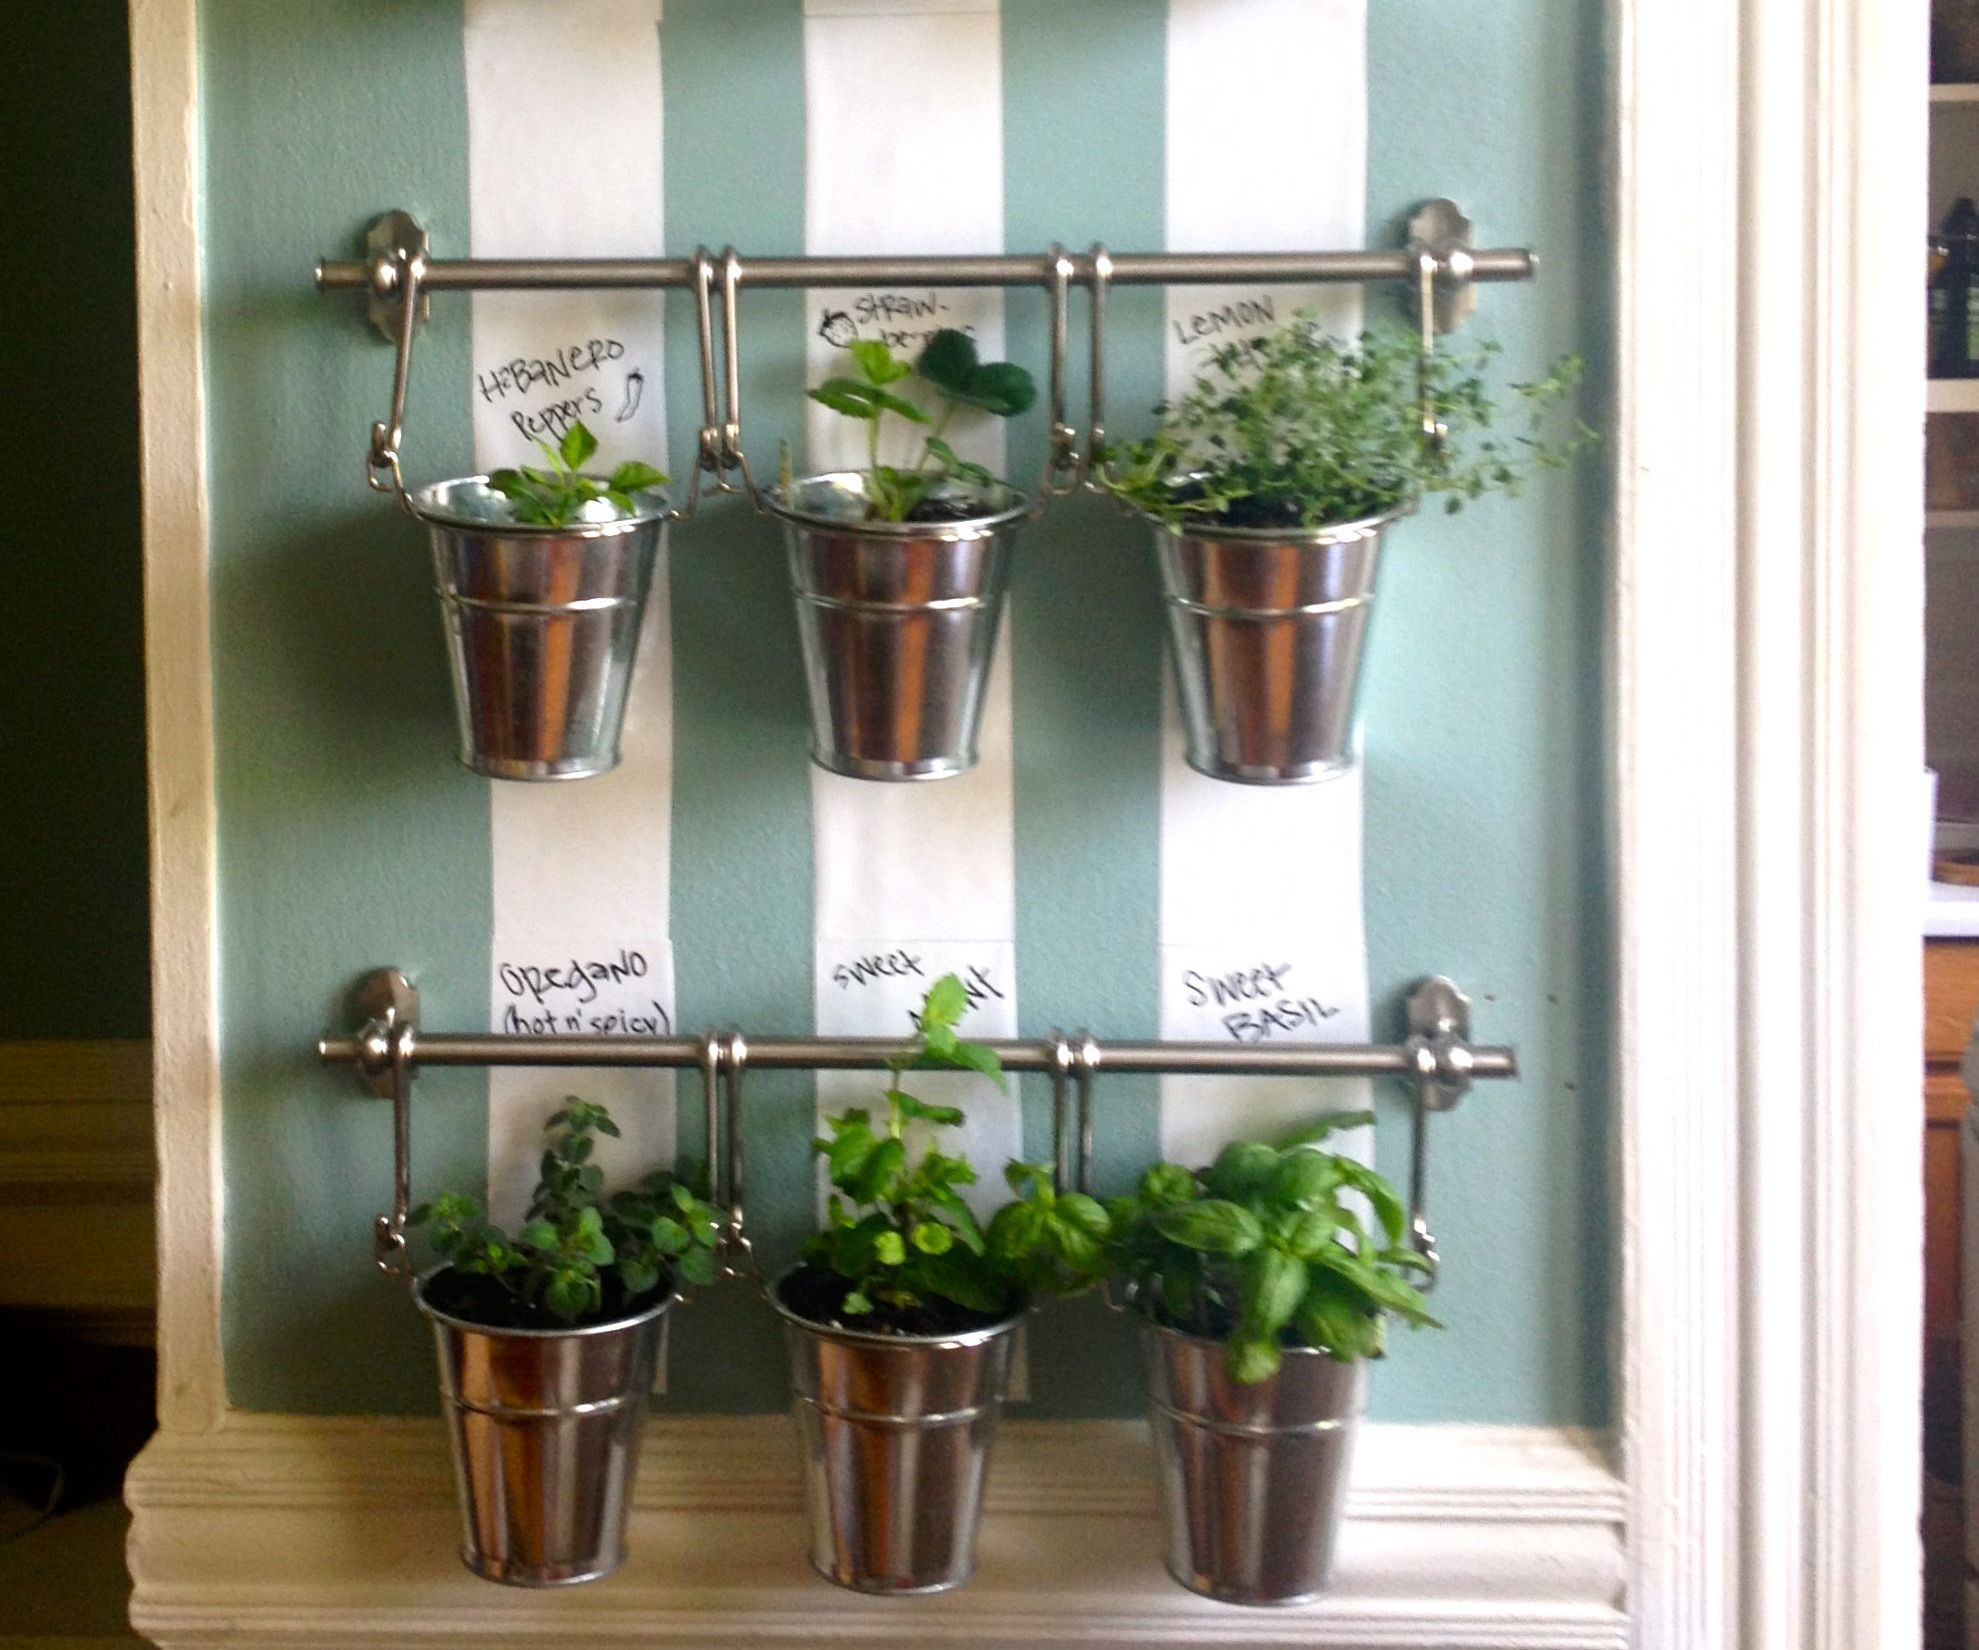 Kitchen Herb Garden Indoor: Herb Wall, Indoor Herbs And Herbs